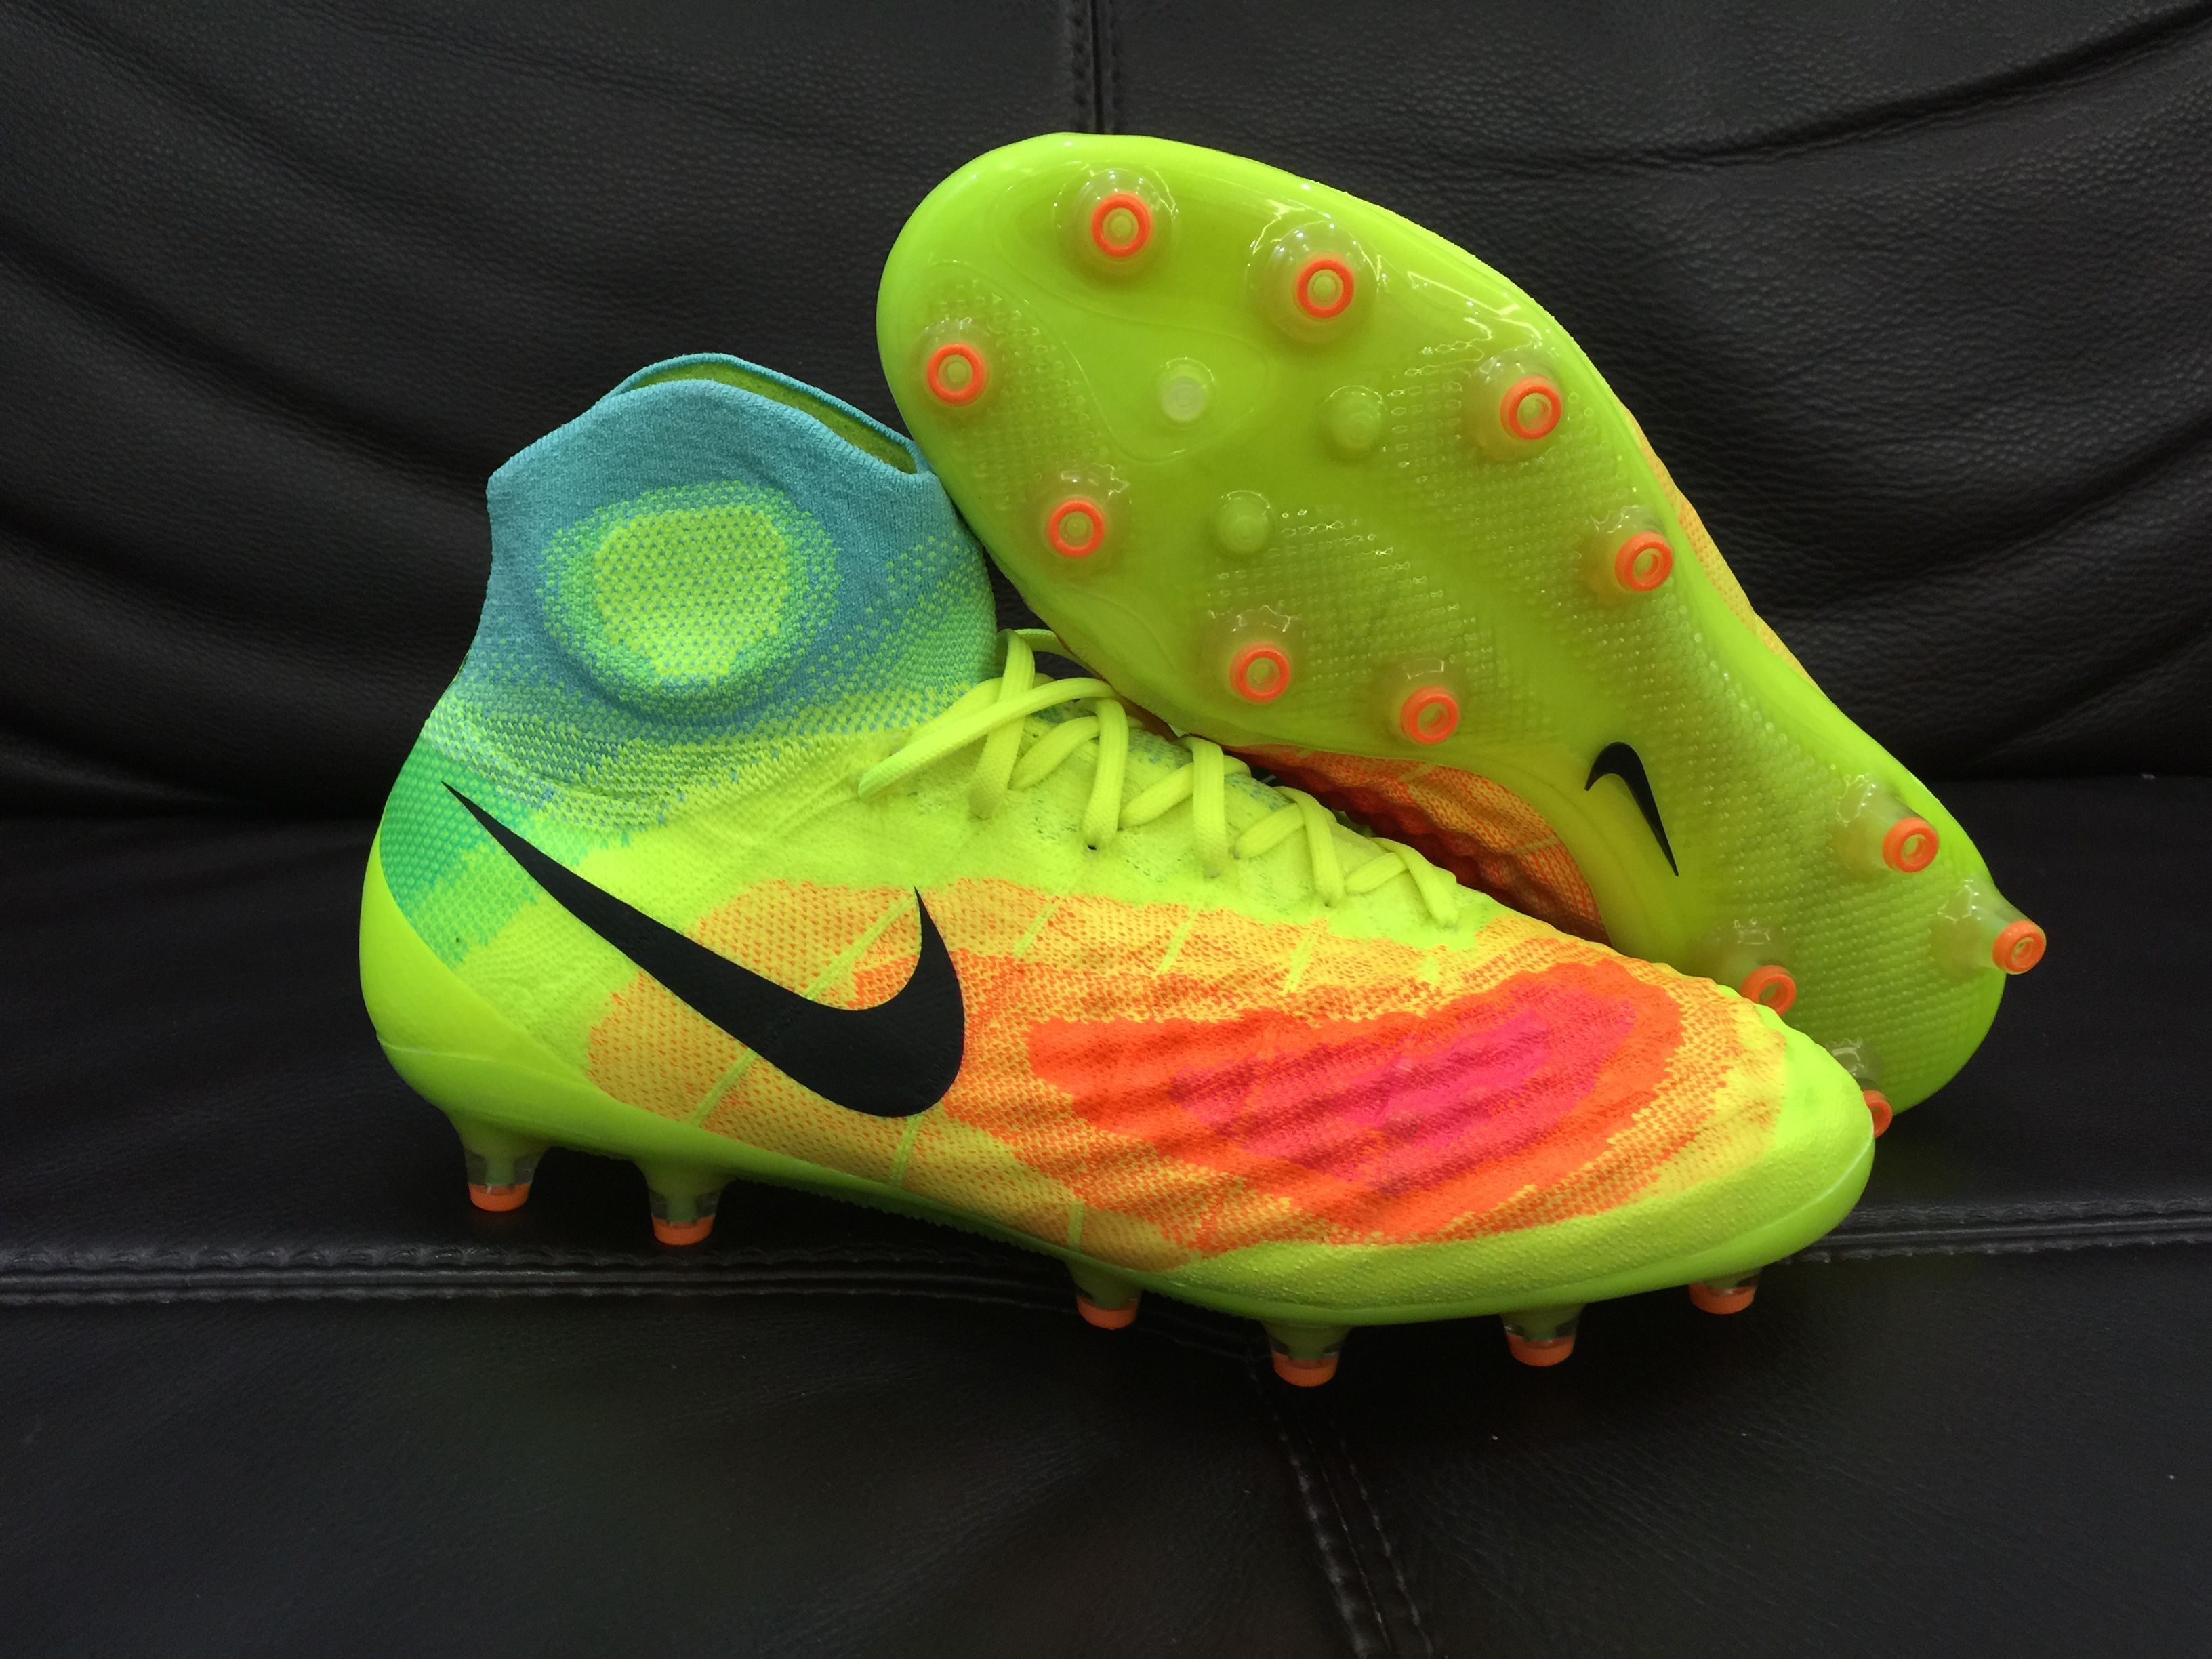 2016-17 all-new Nike Magista Obra 2 soccer boots combine a heightened  collar with a knitted Flyknit upper for a sock-like fit. The new Nike  Magista Obra II ...